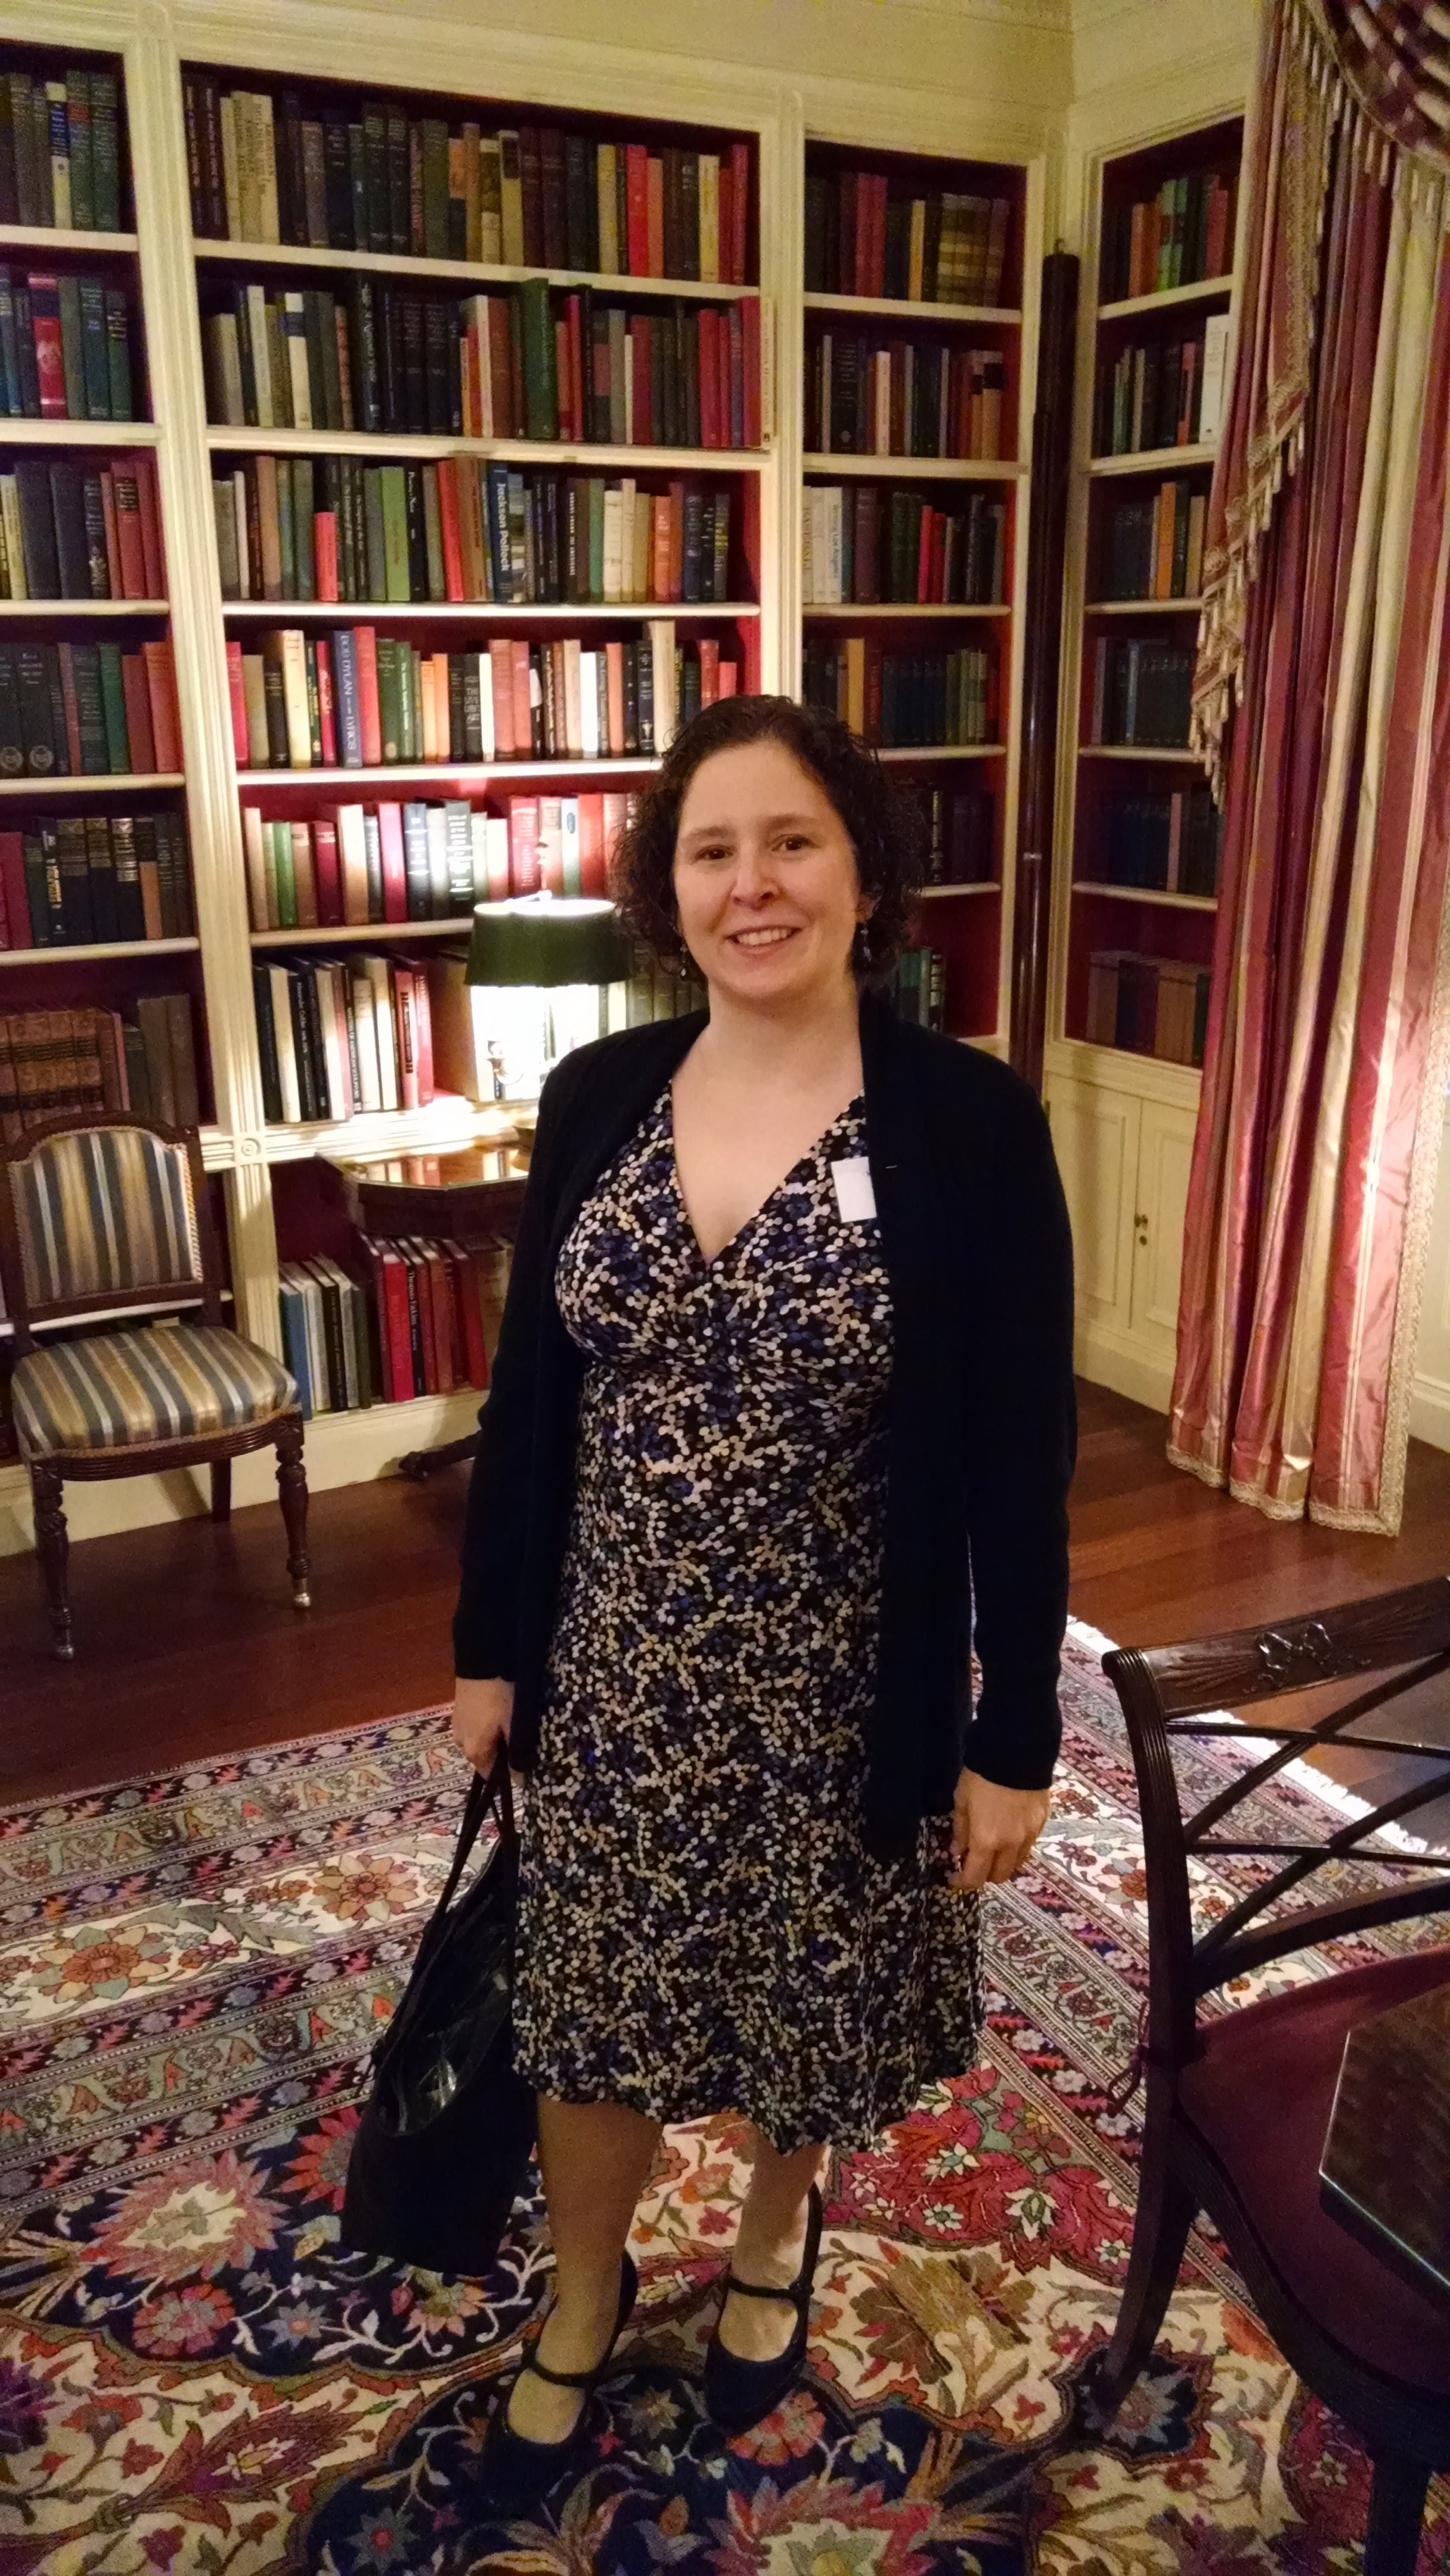 In the White House Library